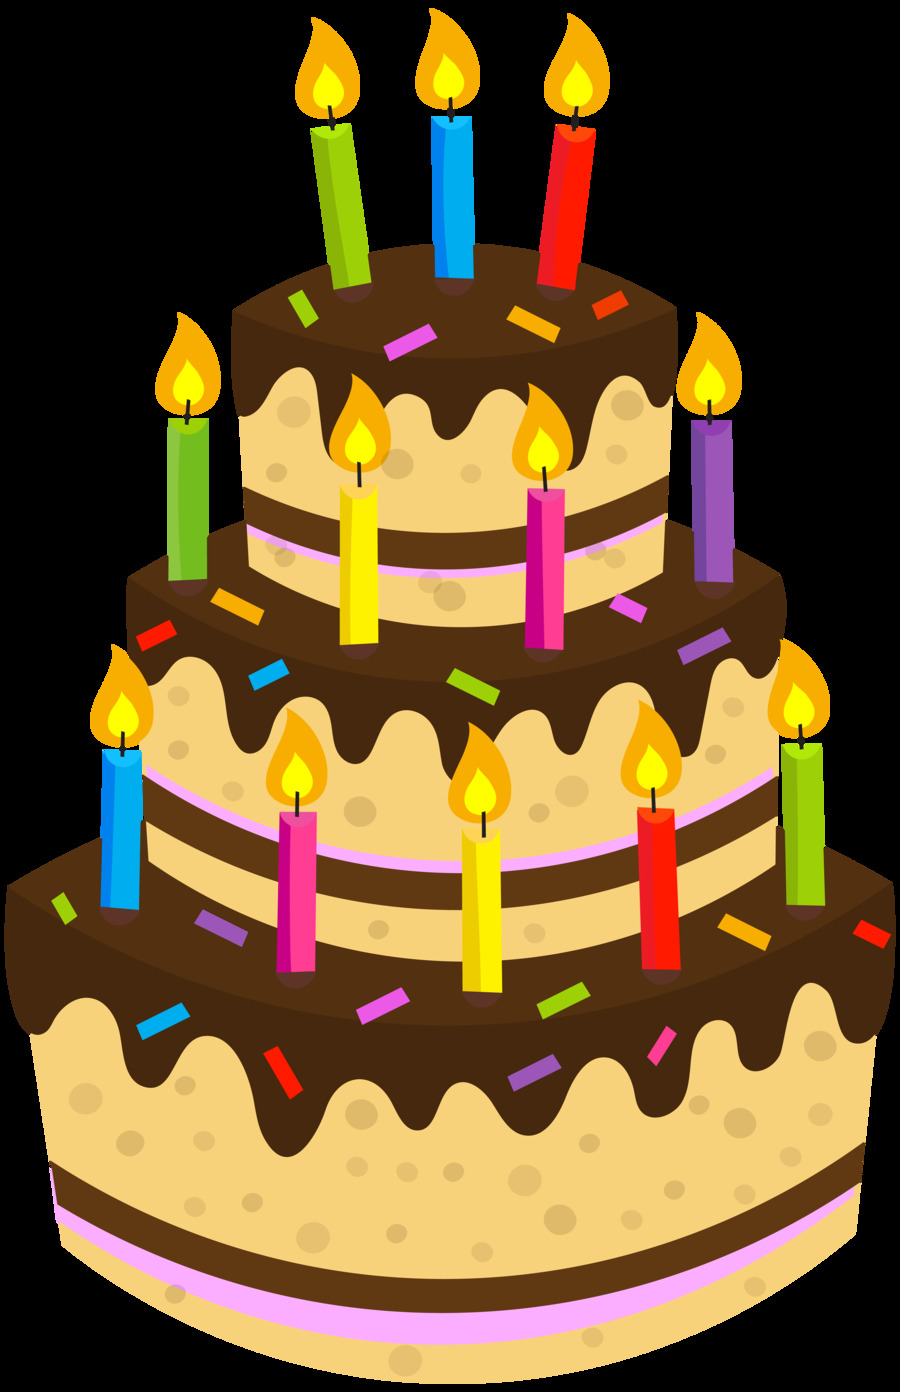 Download Birthday Cake Png Transparent Clipart Chocolate Cake Clip